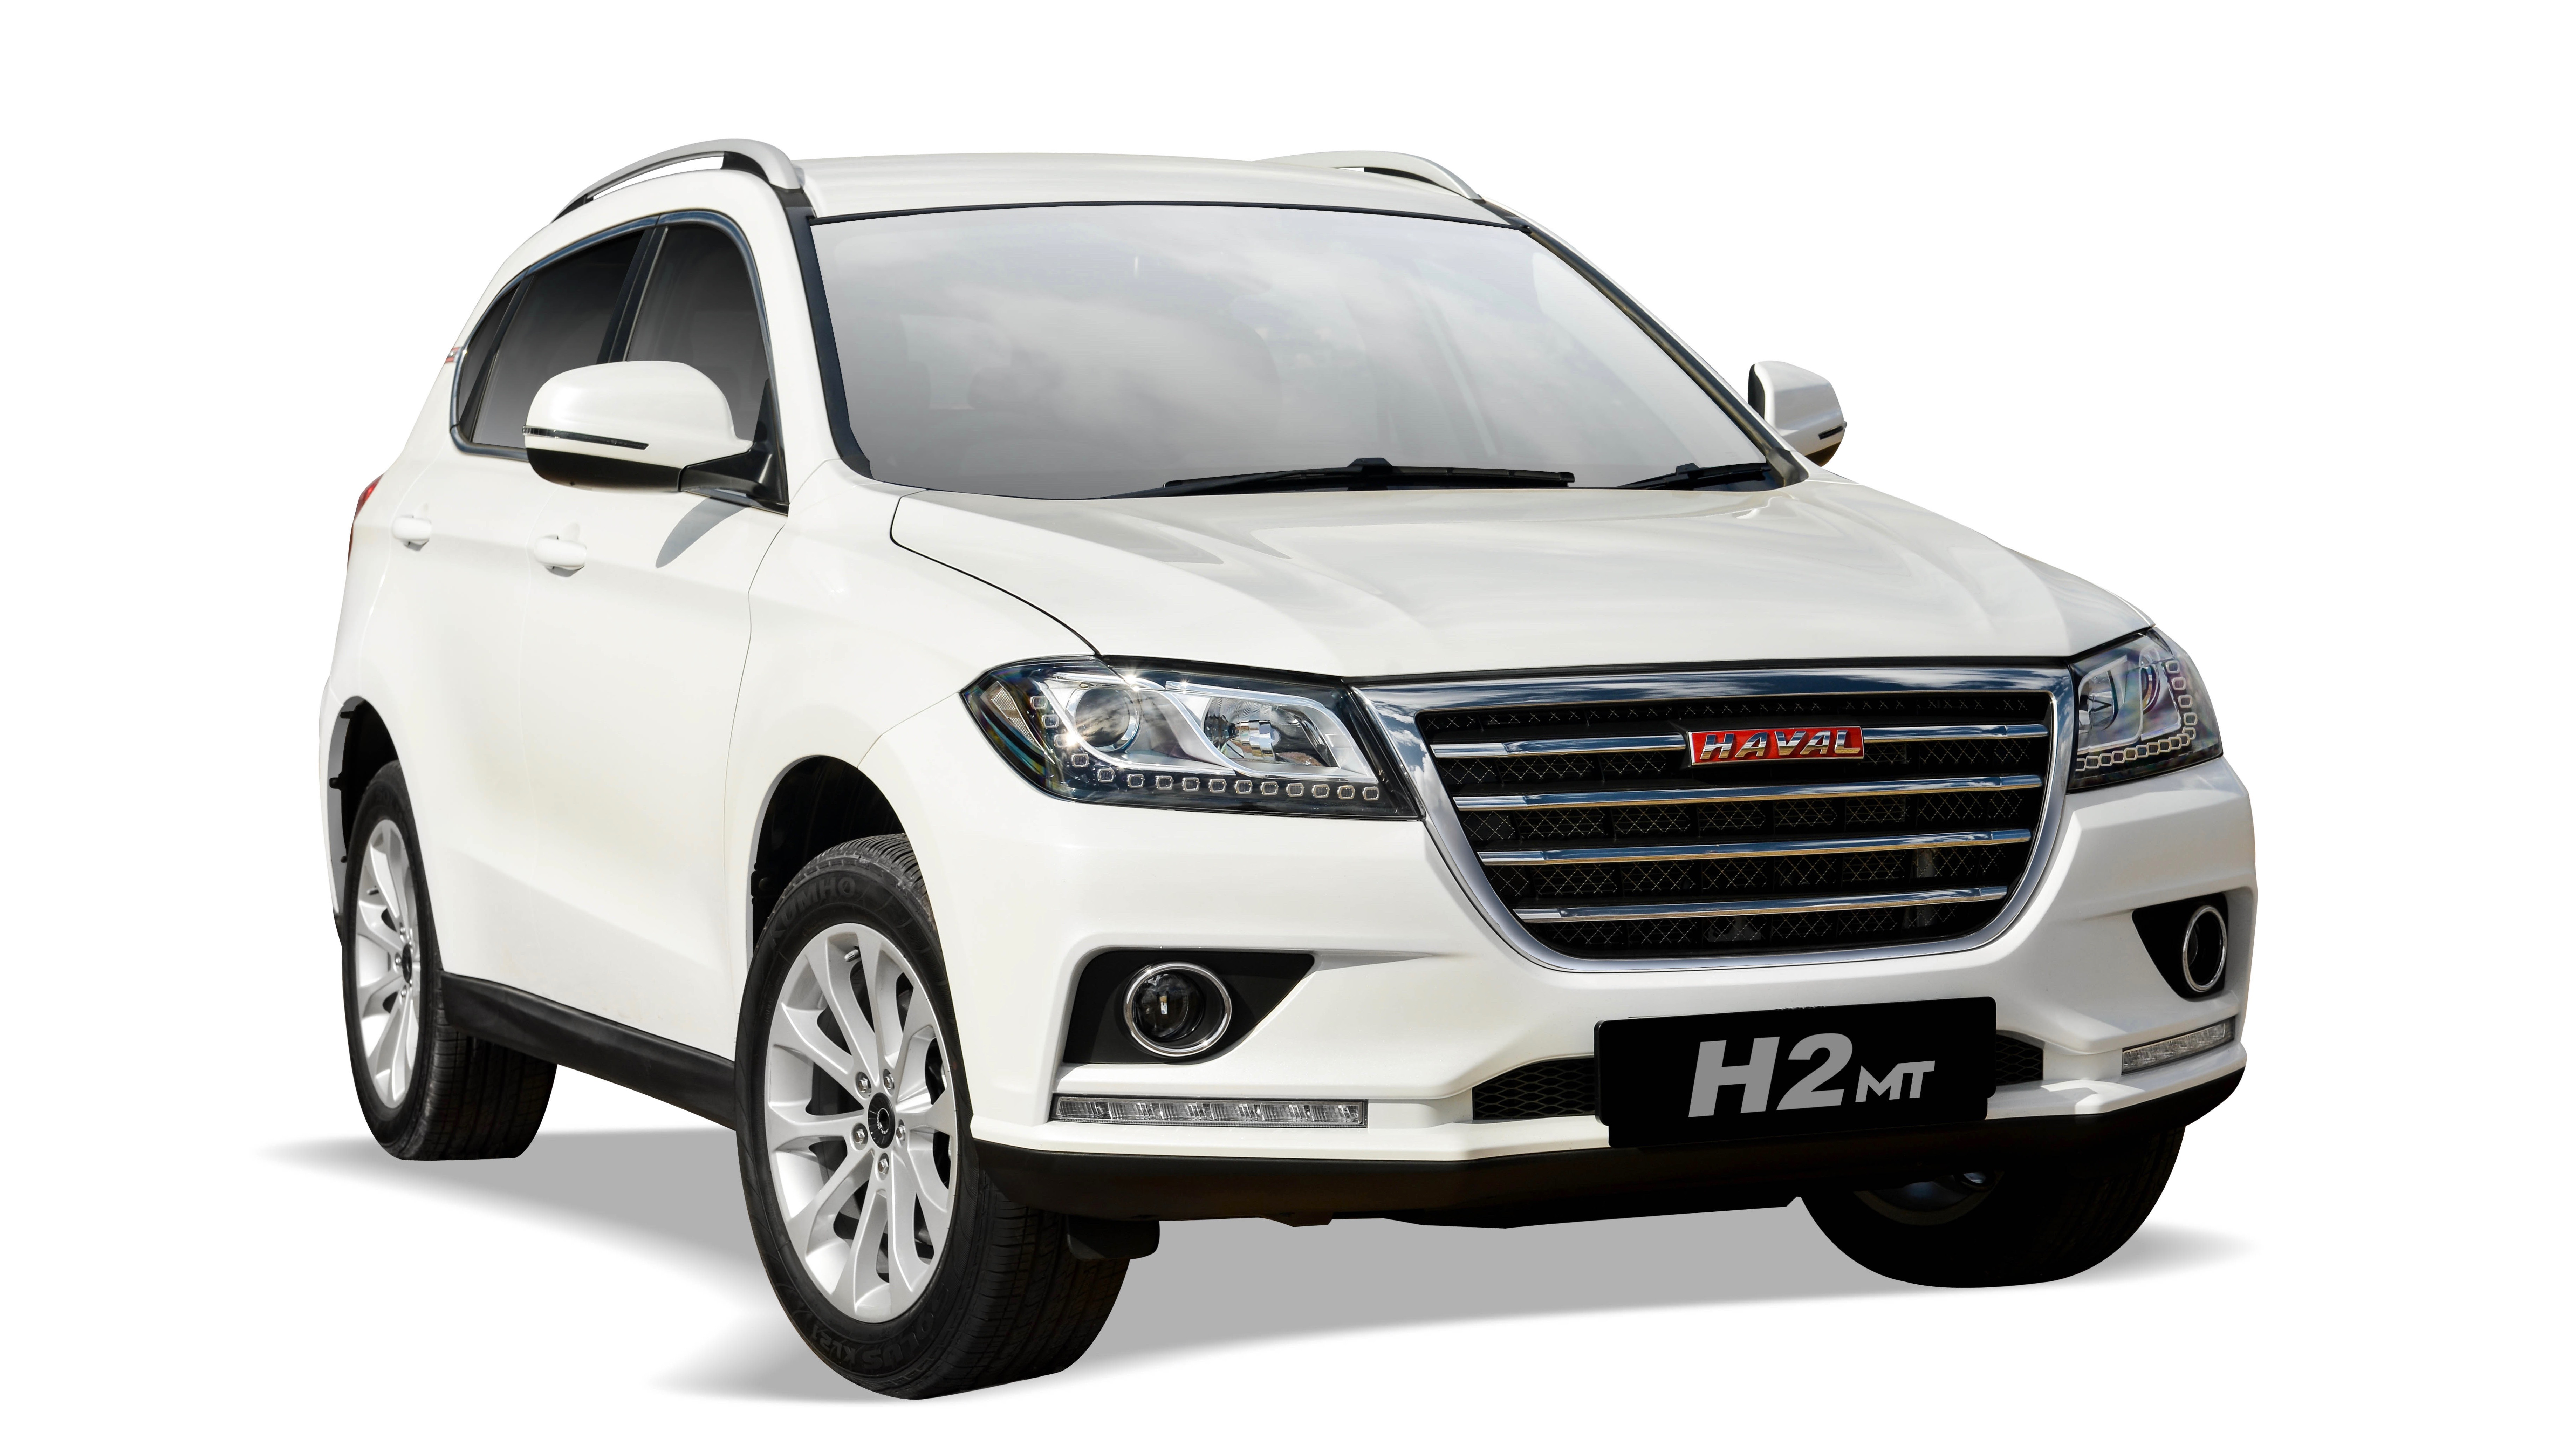 New model joins Haval